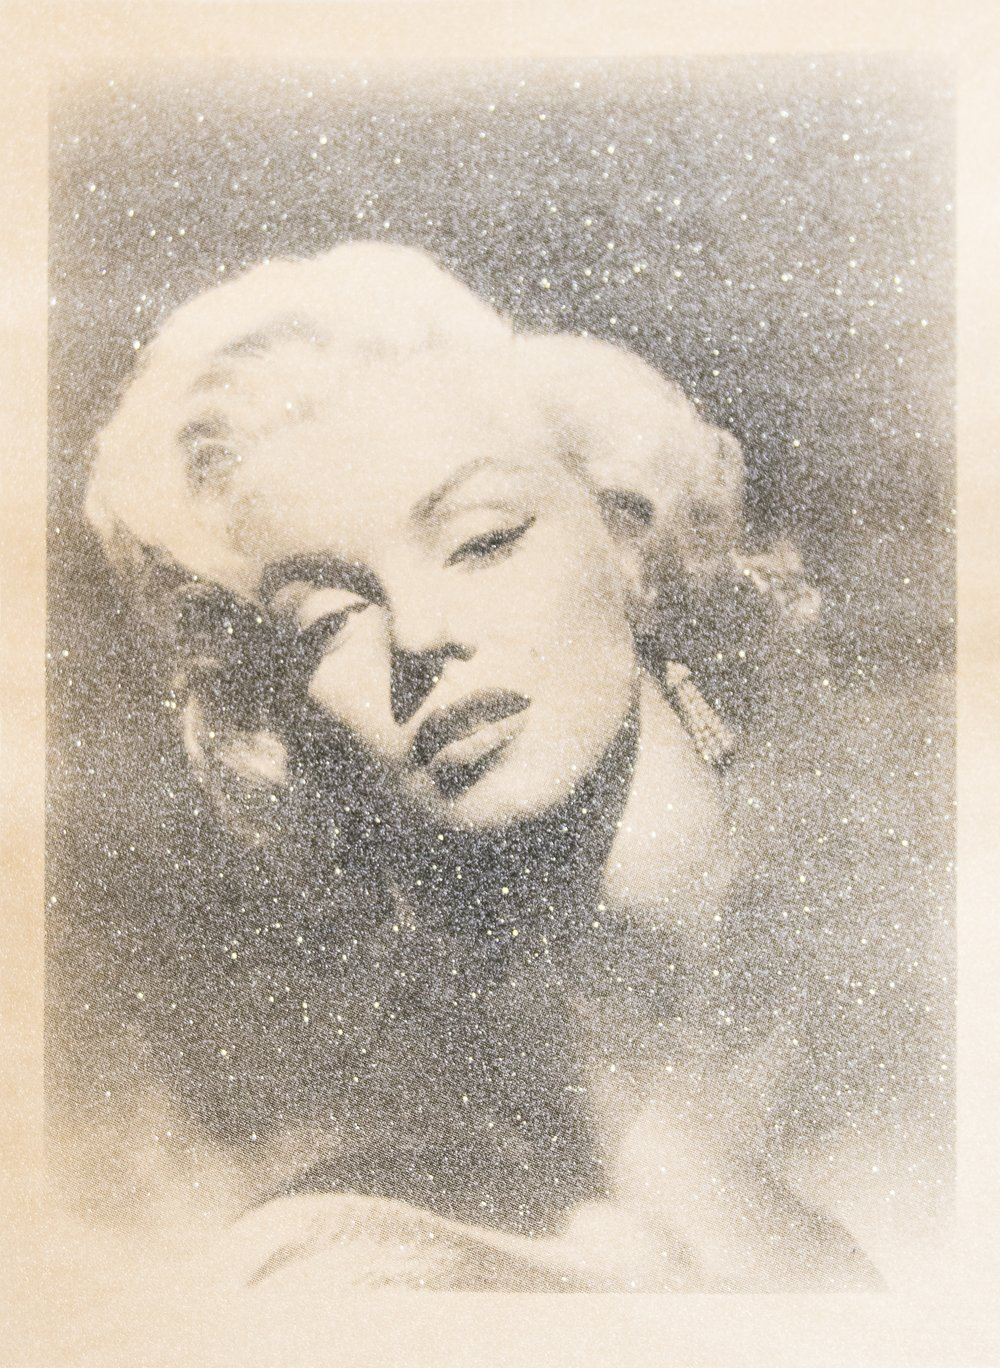 Russell Young,  Marilyn Glamour , 2010, Screenprint Acrylic Paint and Diamond Dust on Linen, 37 x 29 inches.